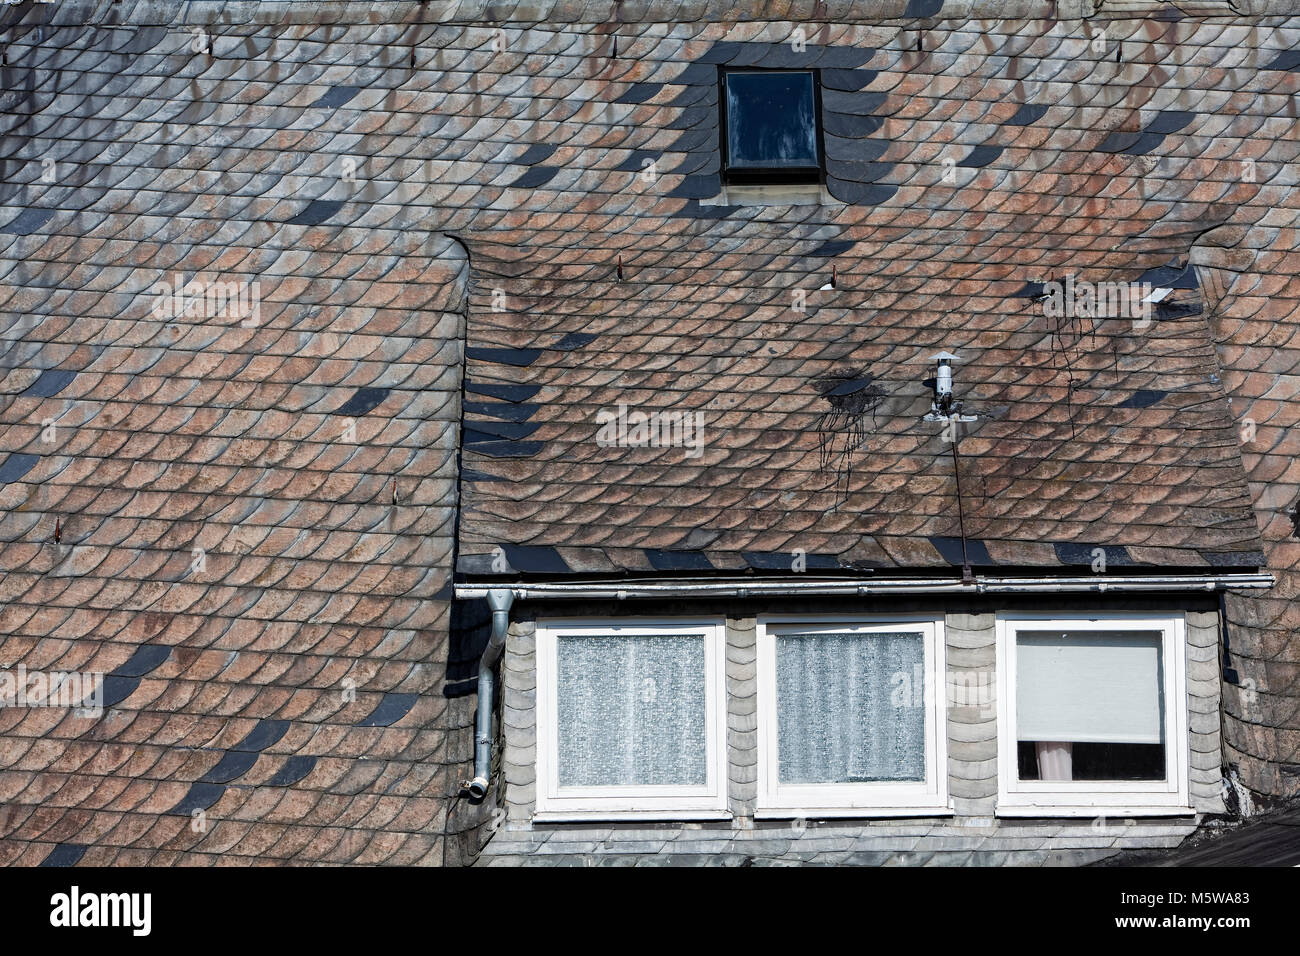 Old roof slates, altes, mit Schiefer gedecktes Dach Stock Photo